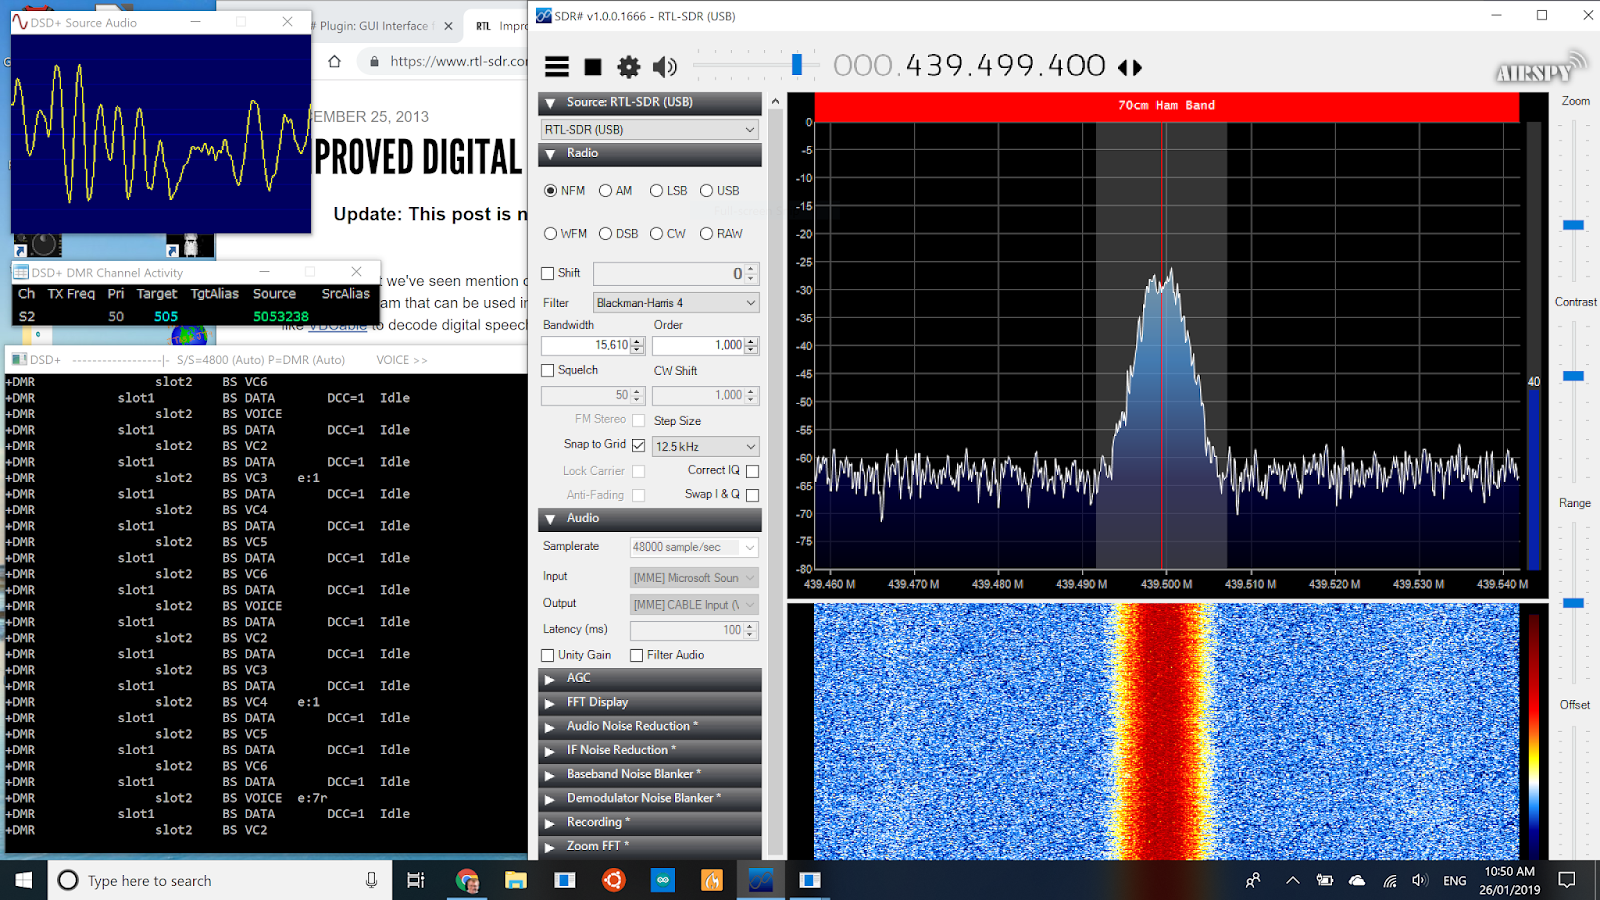 marxy's musing on technology: Listening to DMR without a DMR radio